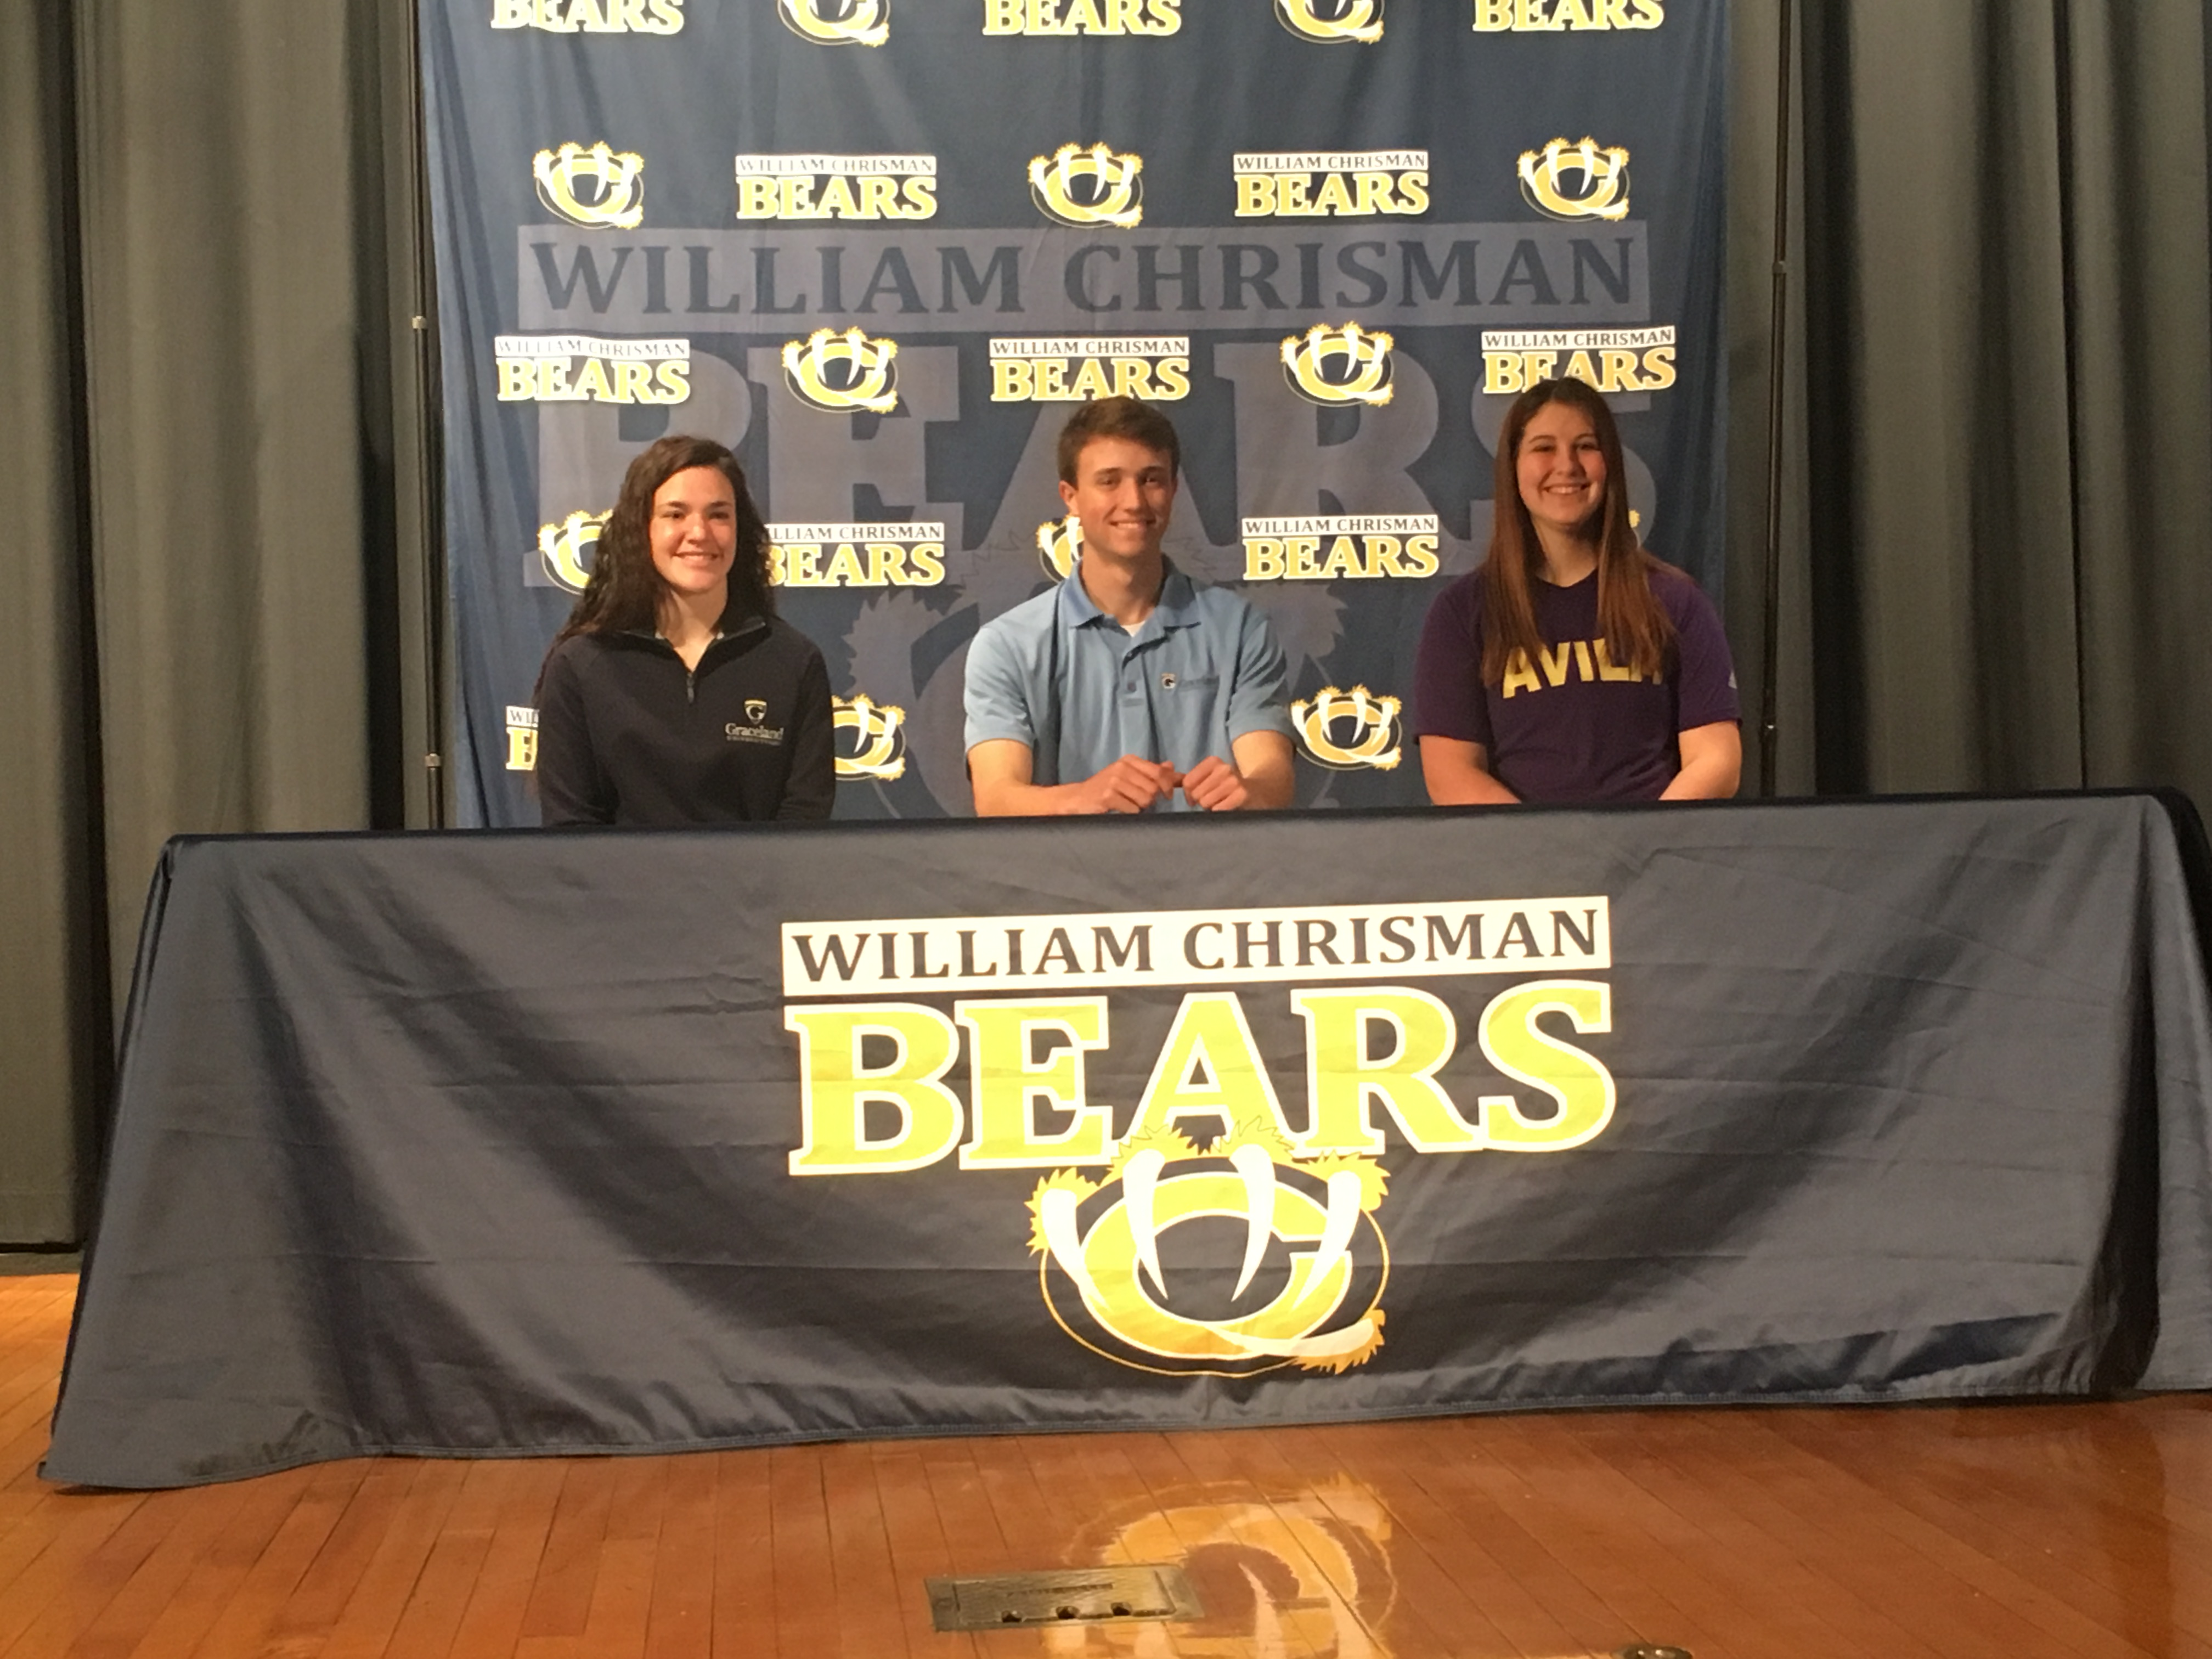 Bears sign offers to further their athletic & academic careers